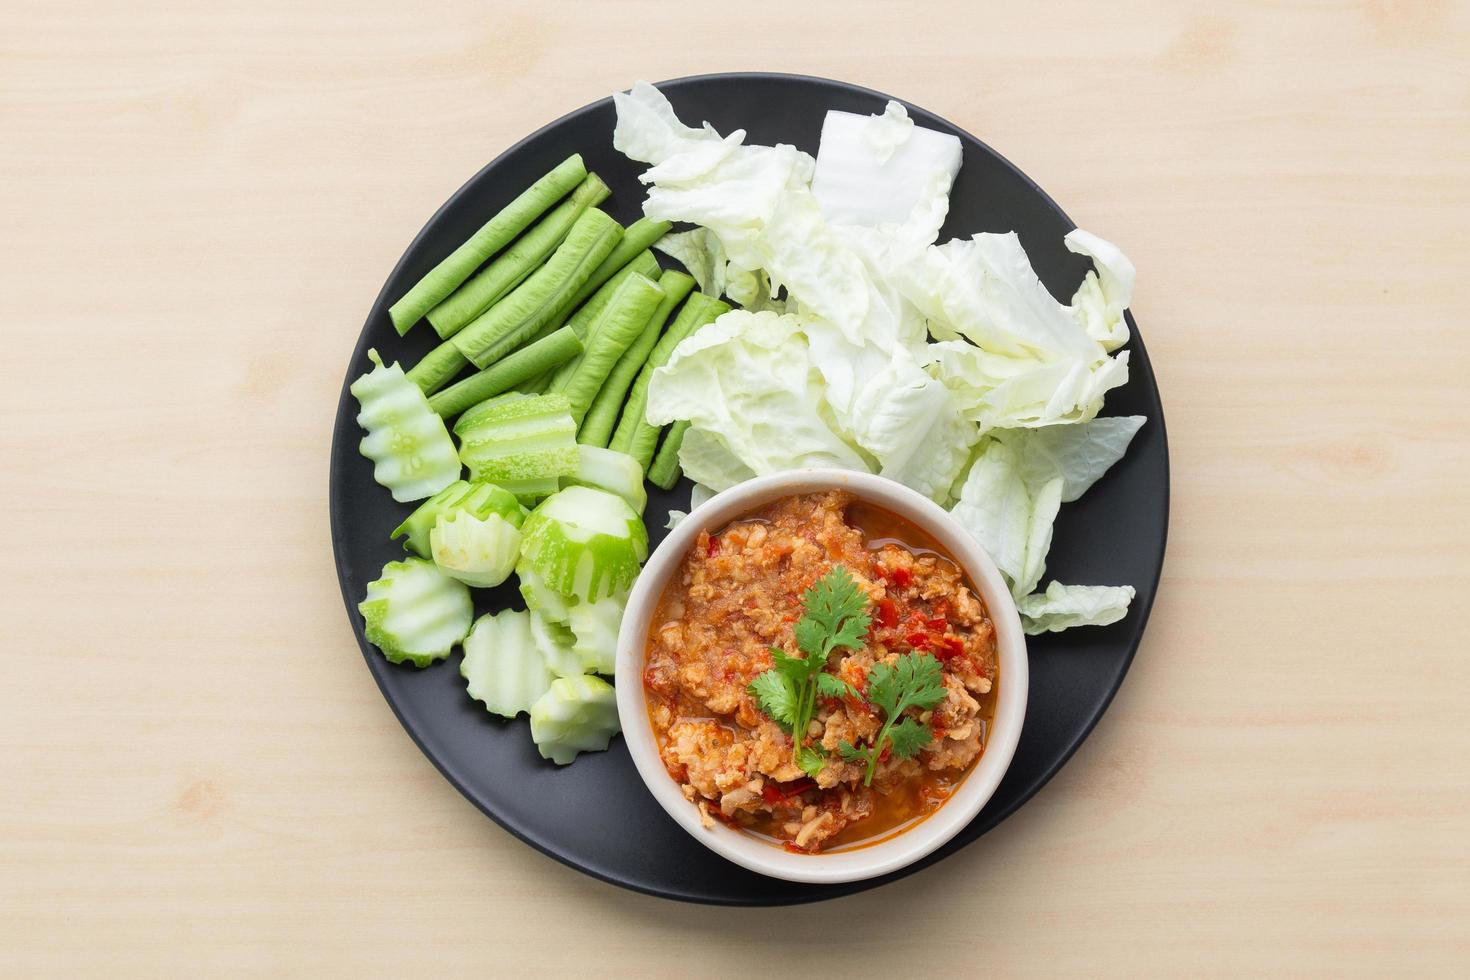 Chili sauce, famous food in Thailand photo